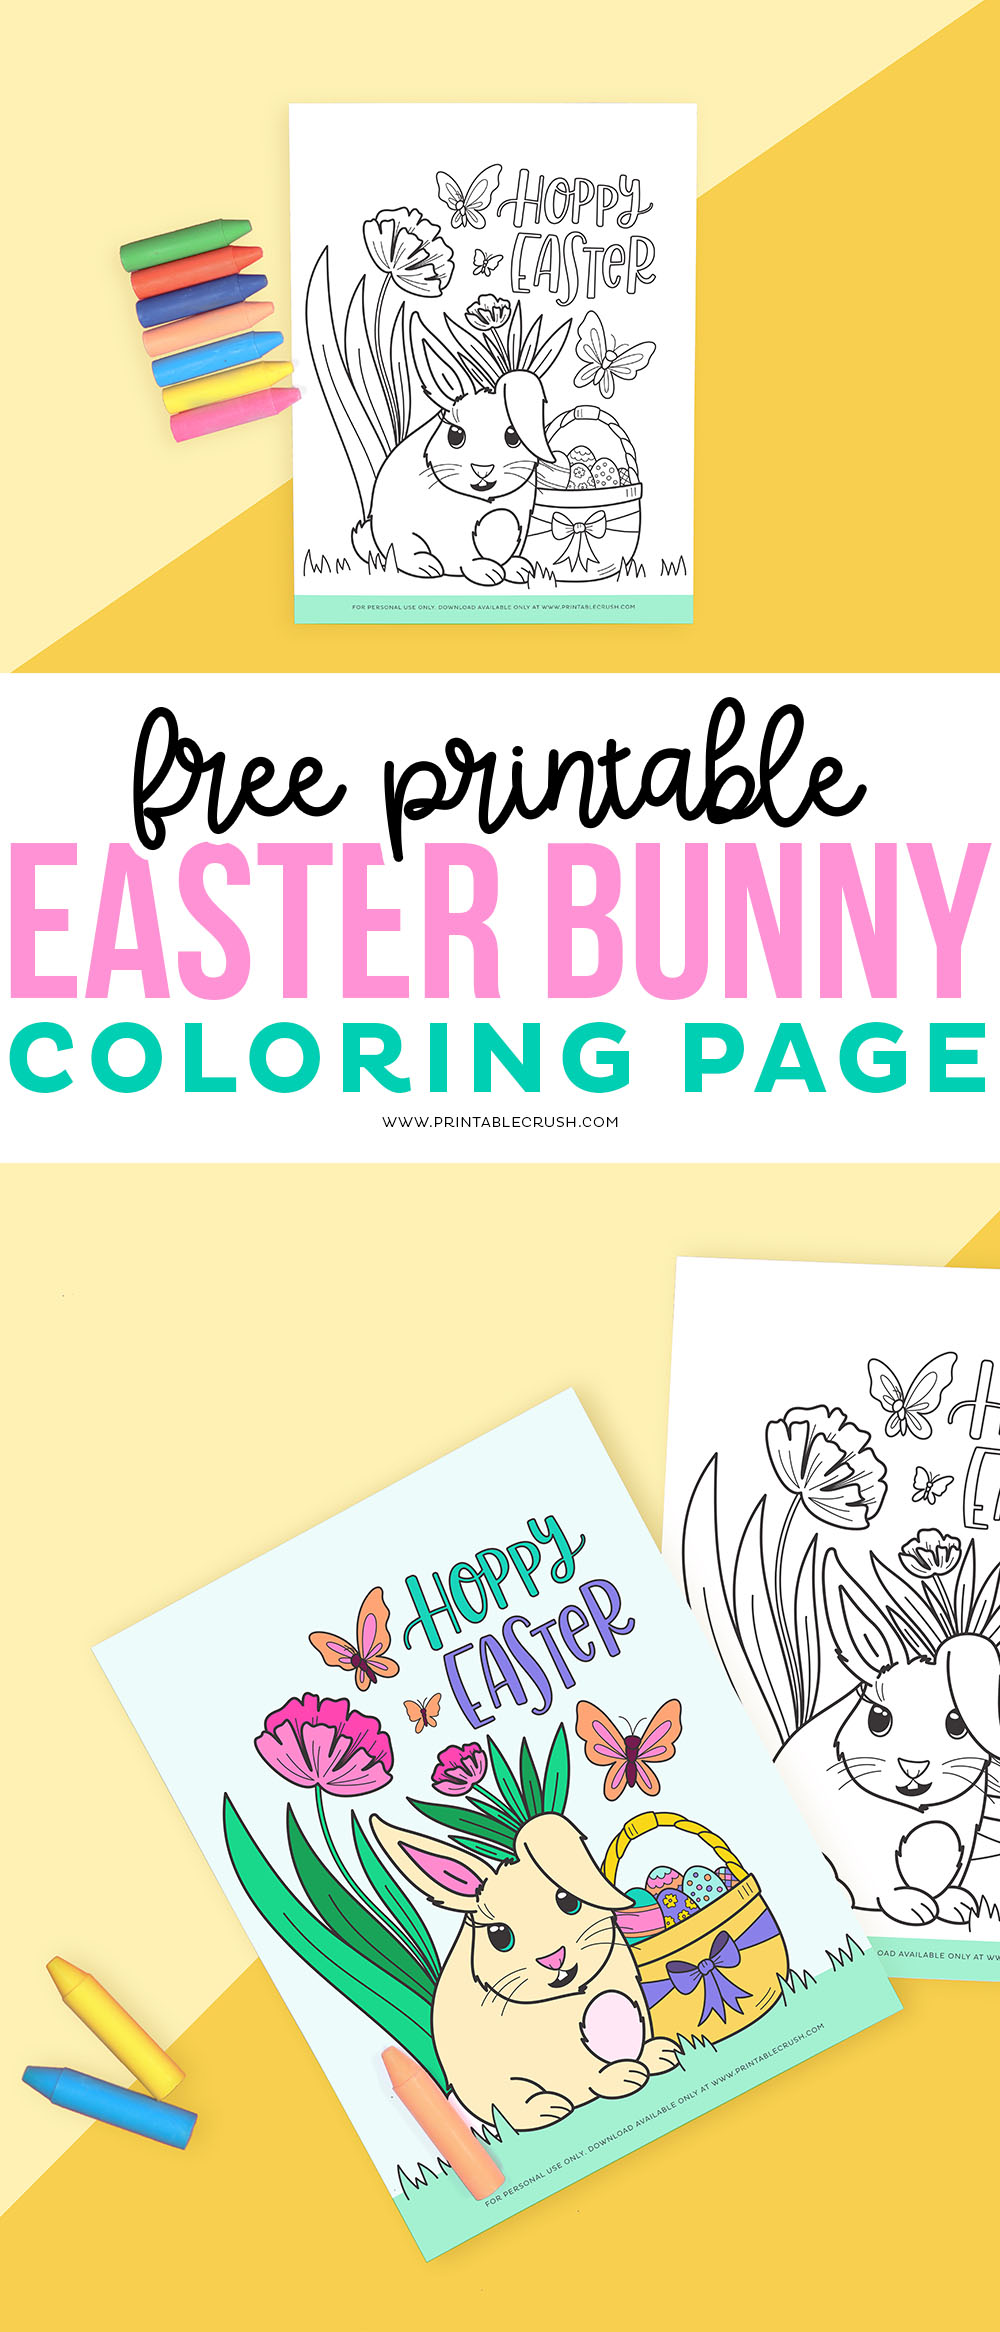 Free Printable Coloring Page for Easter - Free Easter Coloring Page Printable - Printable Crush